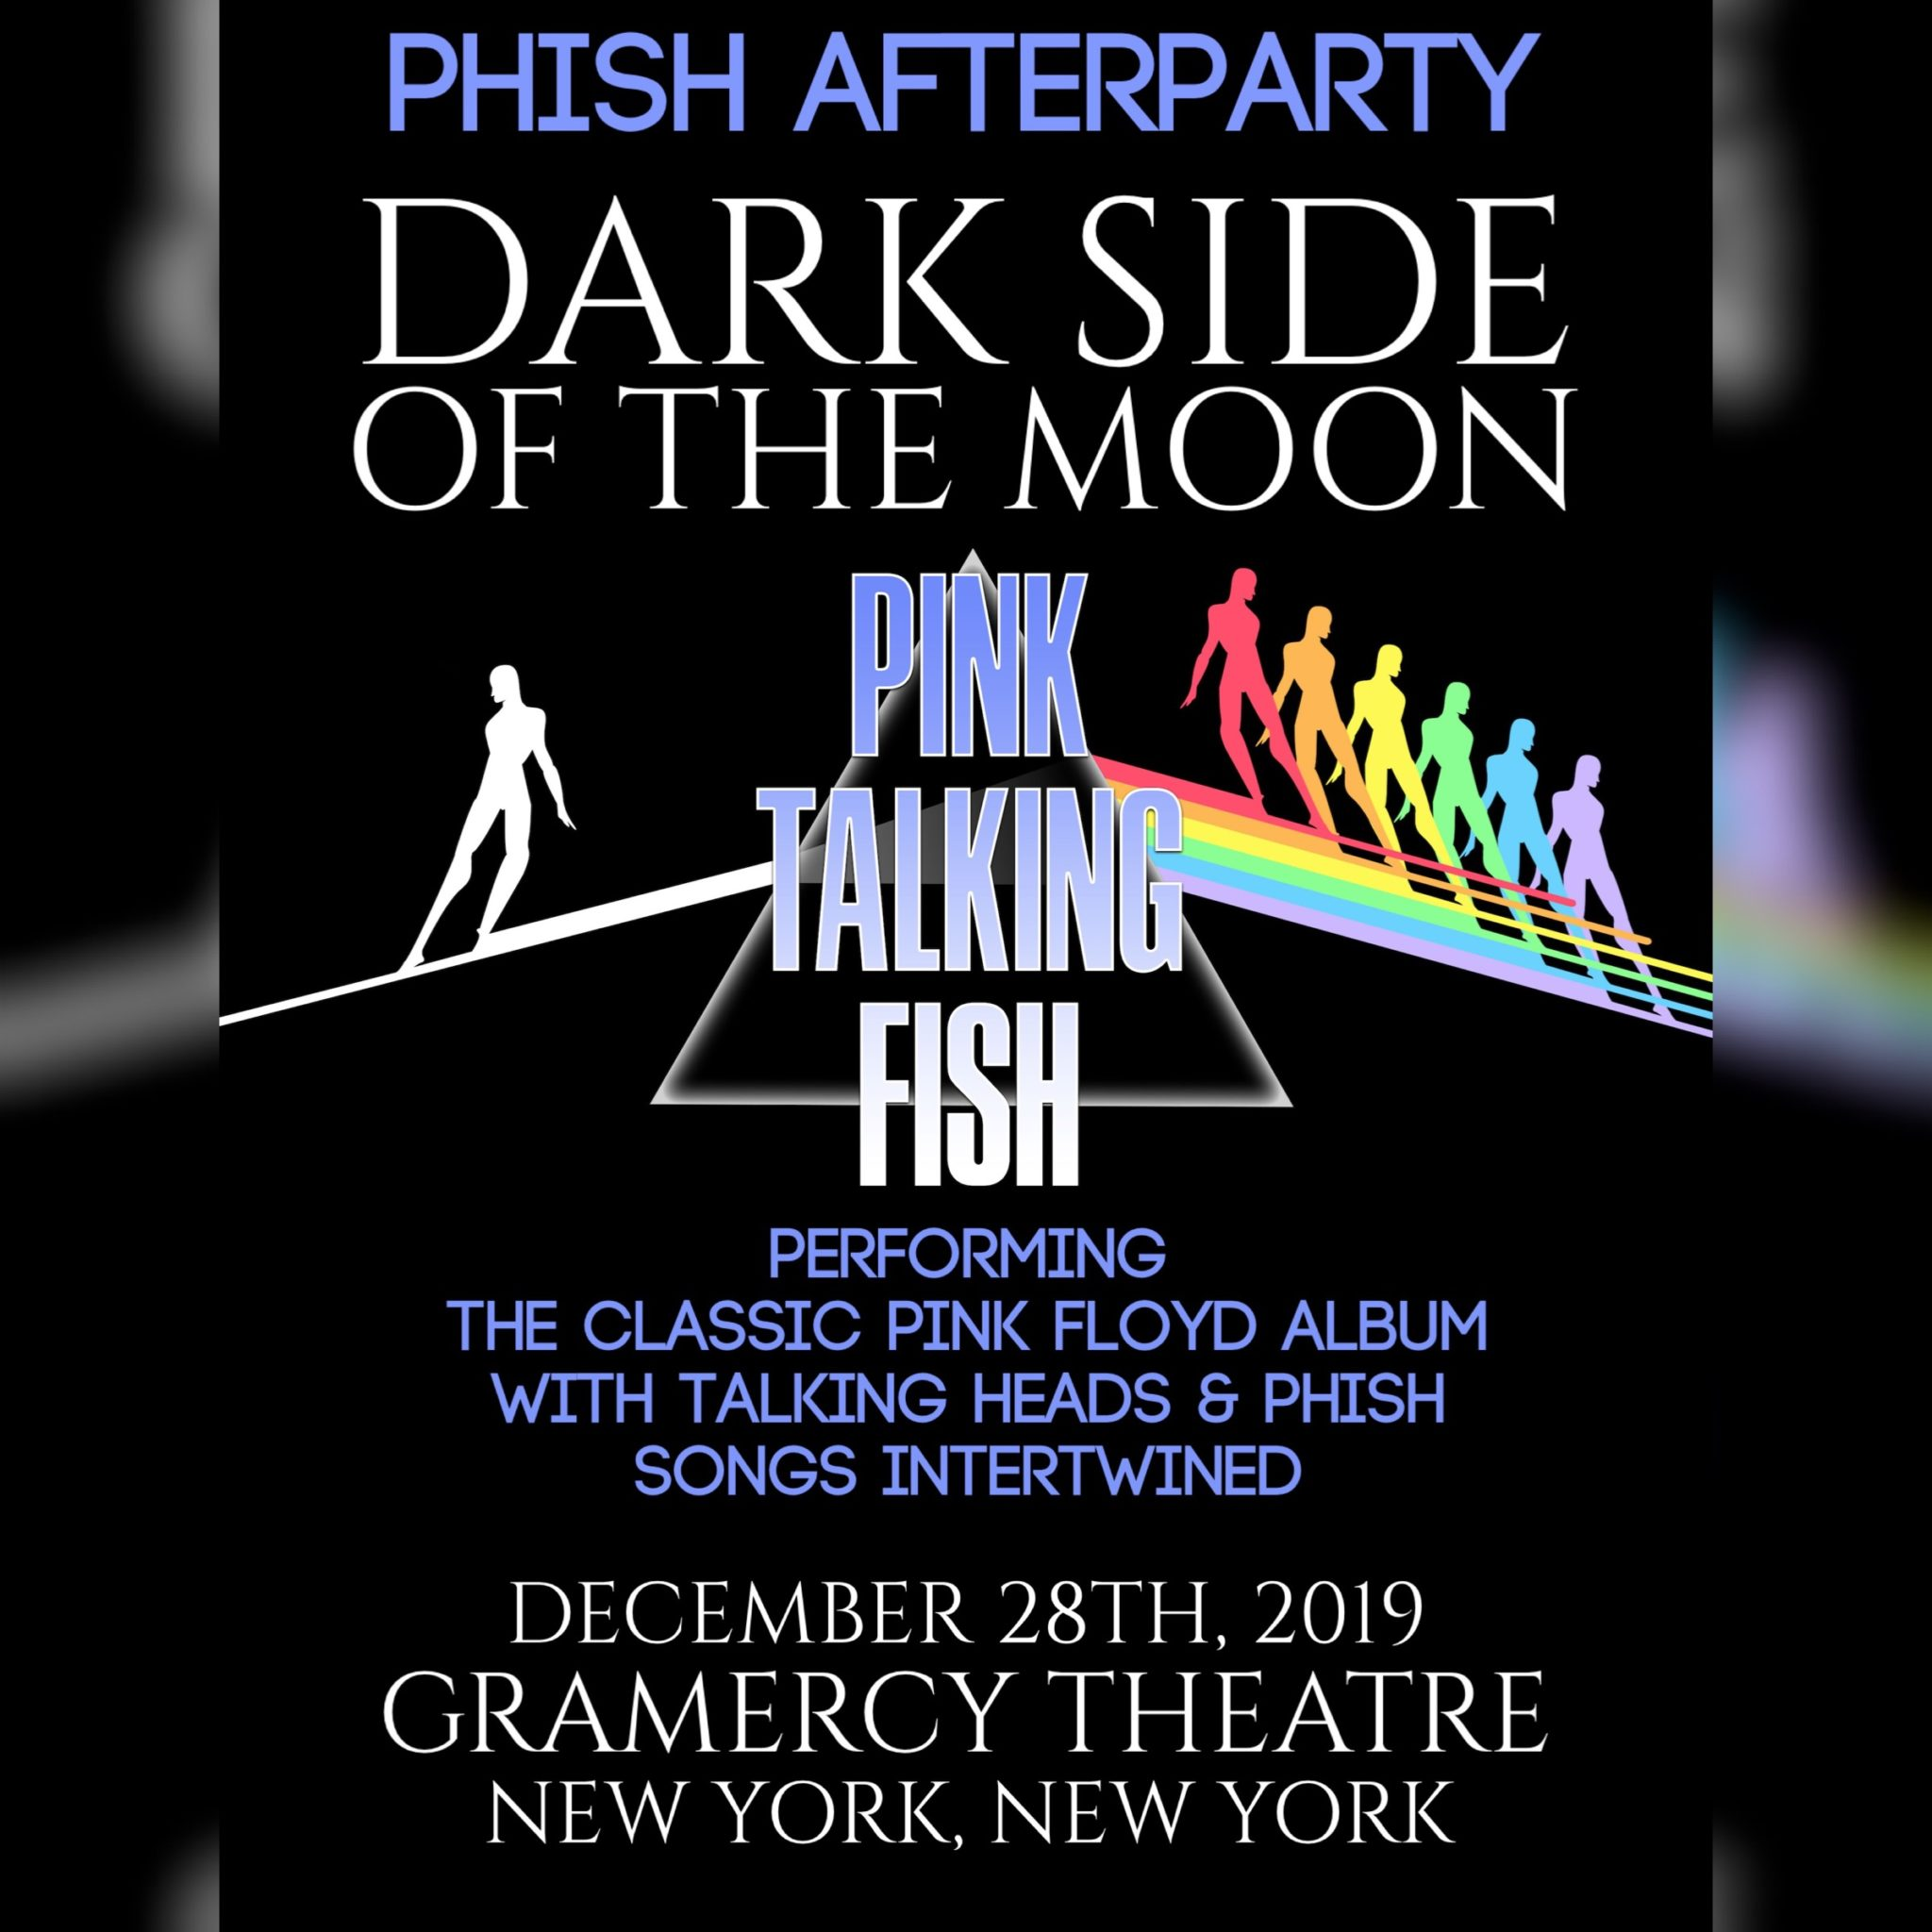 phish after party Pink talking fish